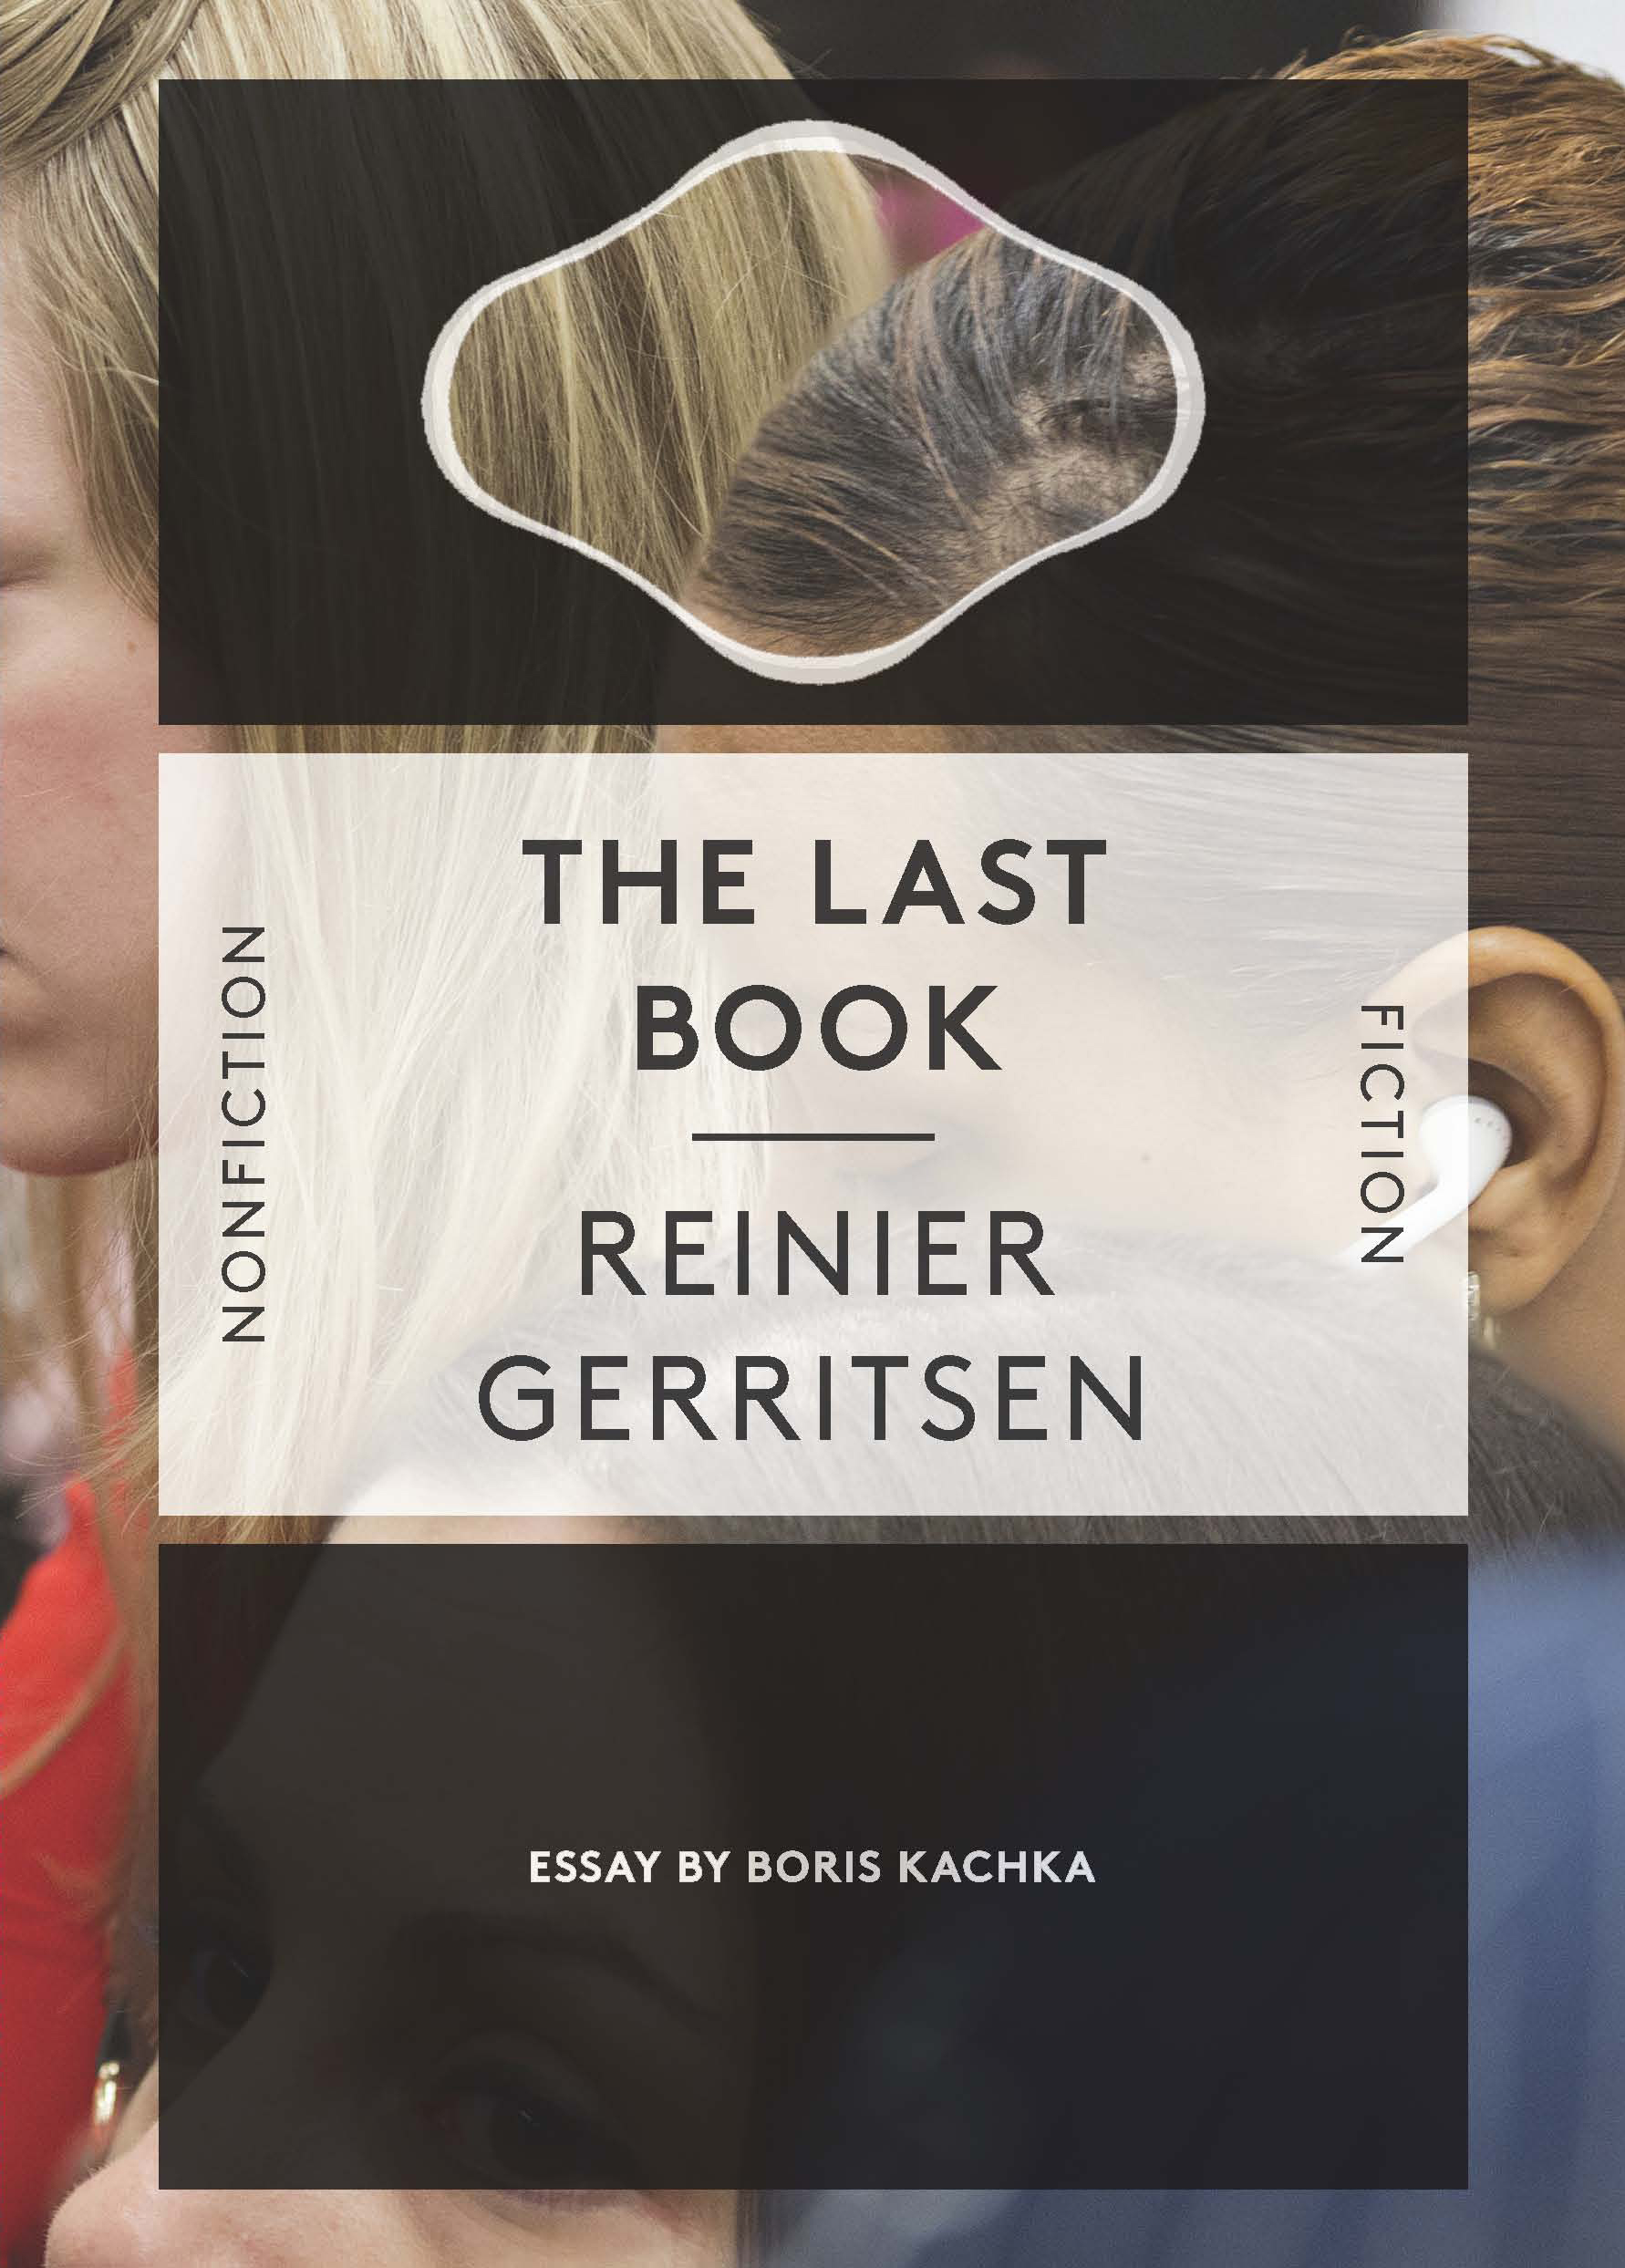 Couverture du livre The Last Book de Gerritsen